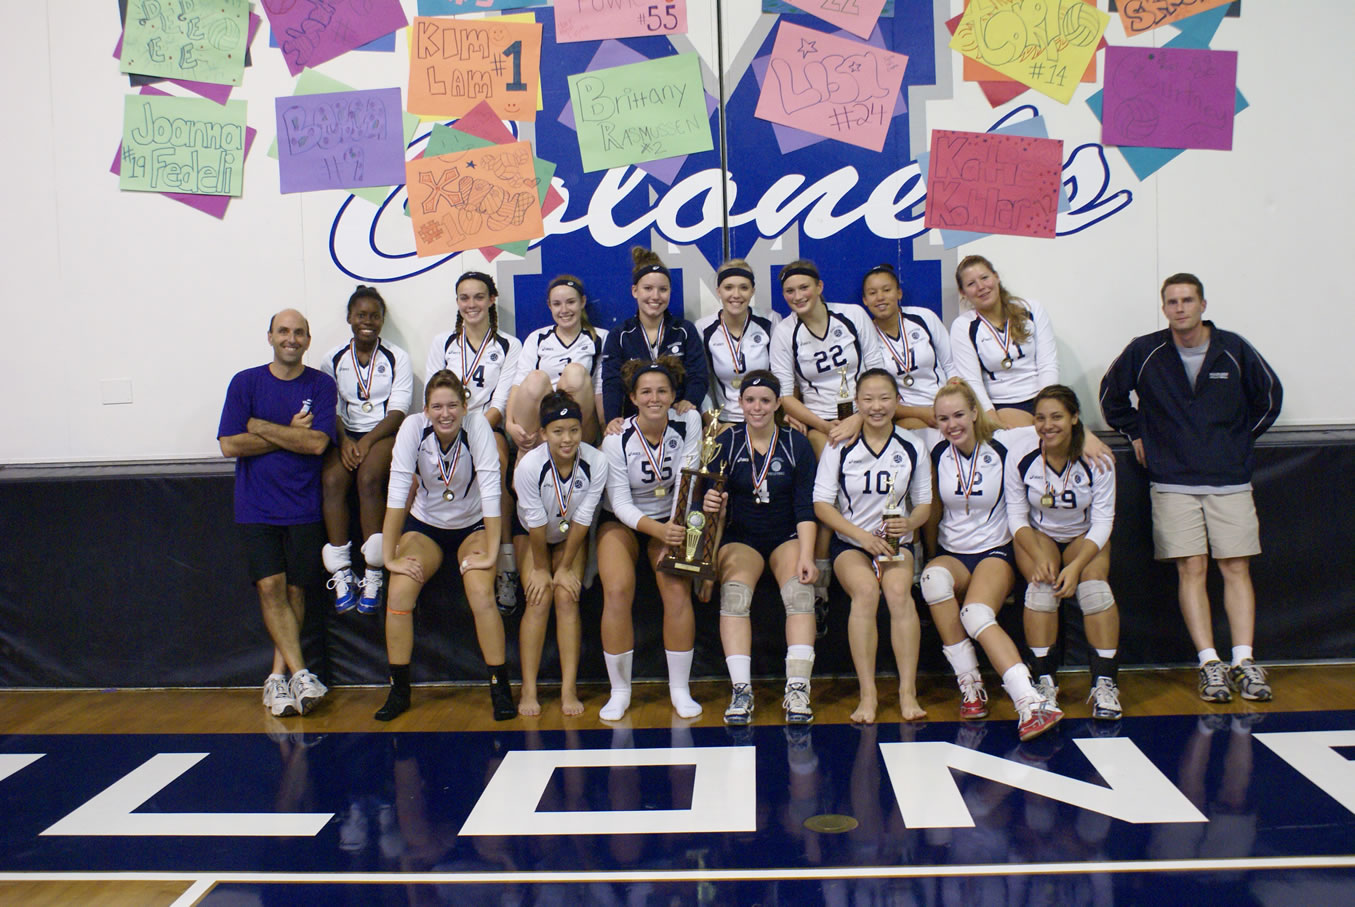 2009 tournament champions photo